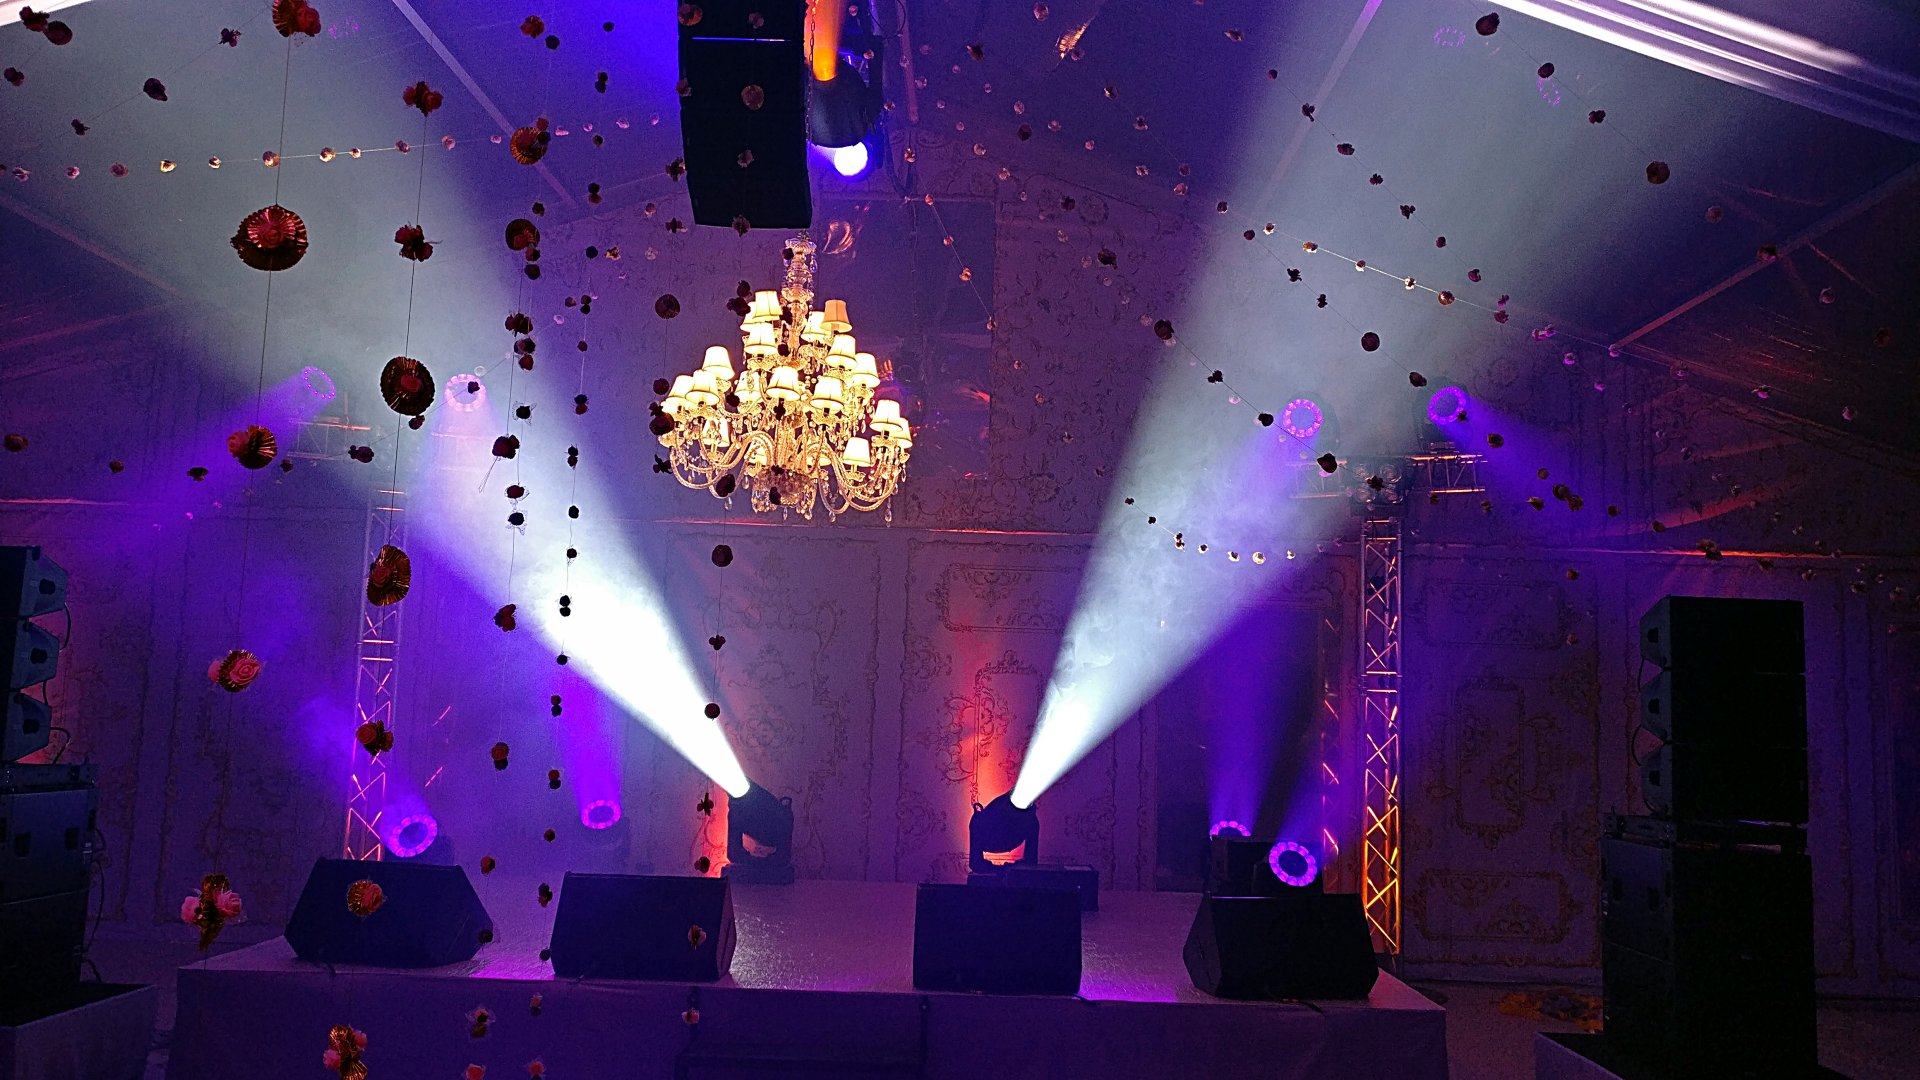 scene-eclairage-light-chantilly-mariage